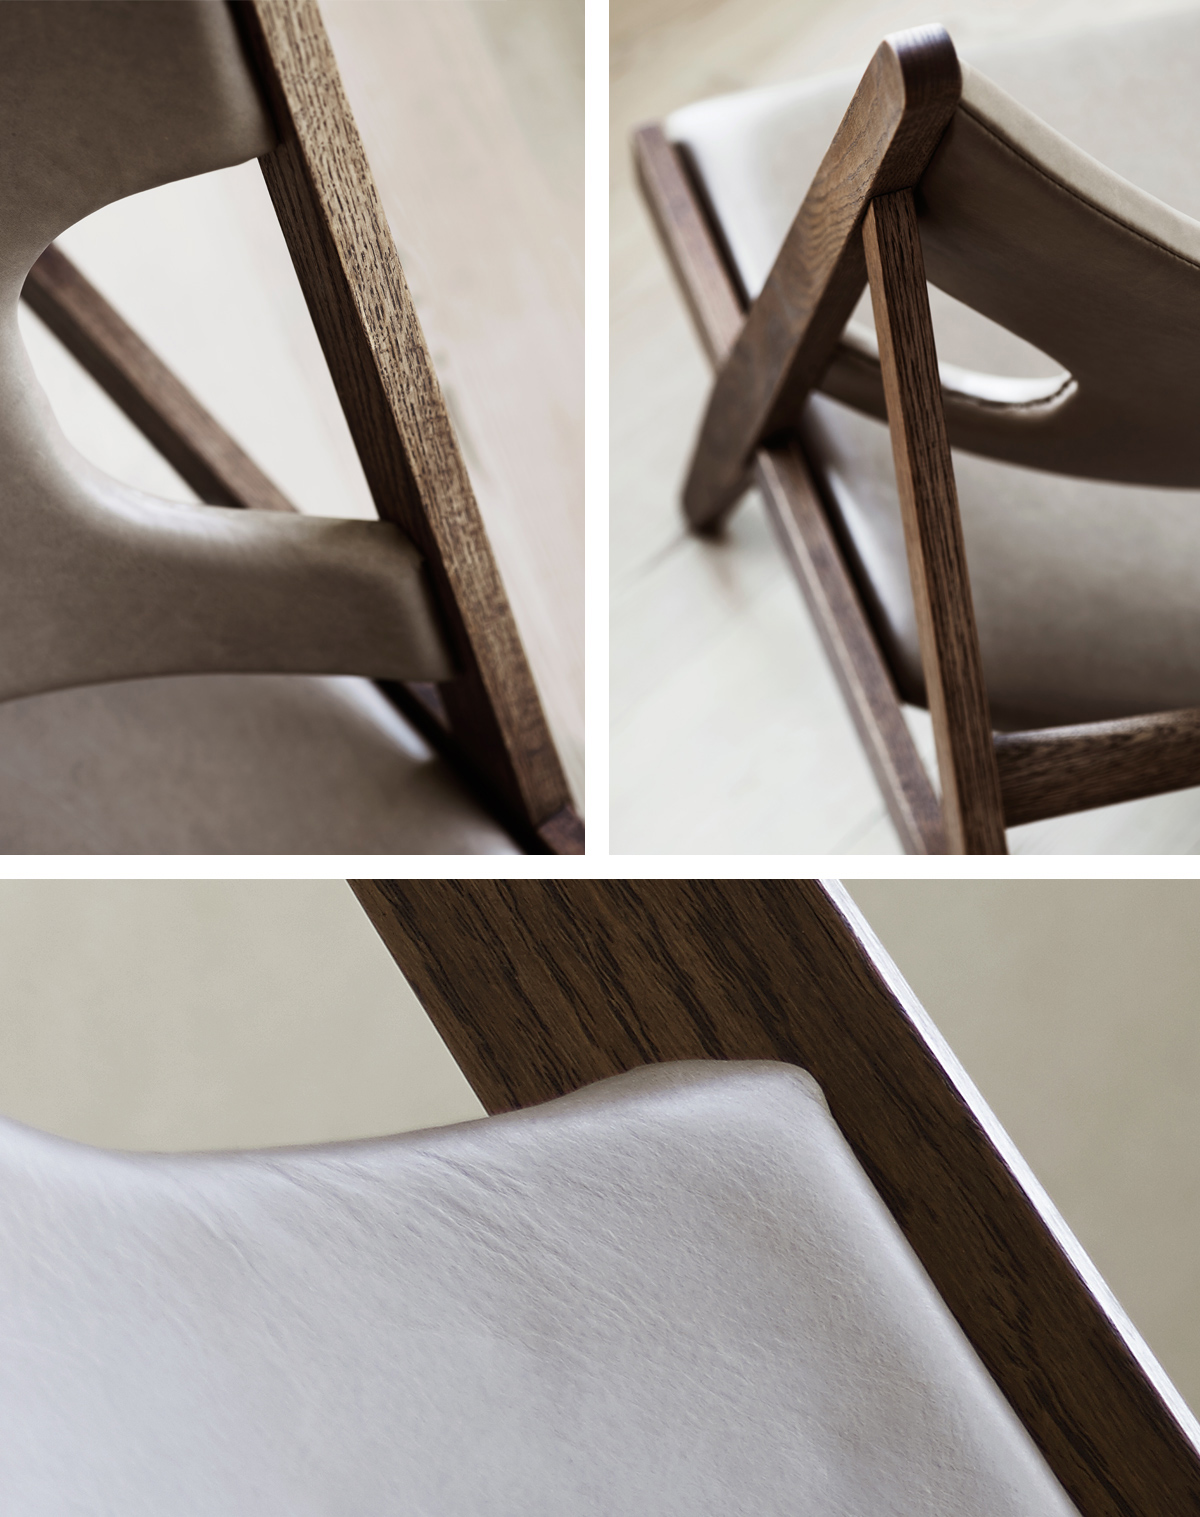 A closer look at the Menu Knitting Chair – exclusive to Nest.co.uk